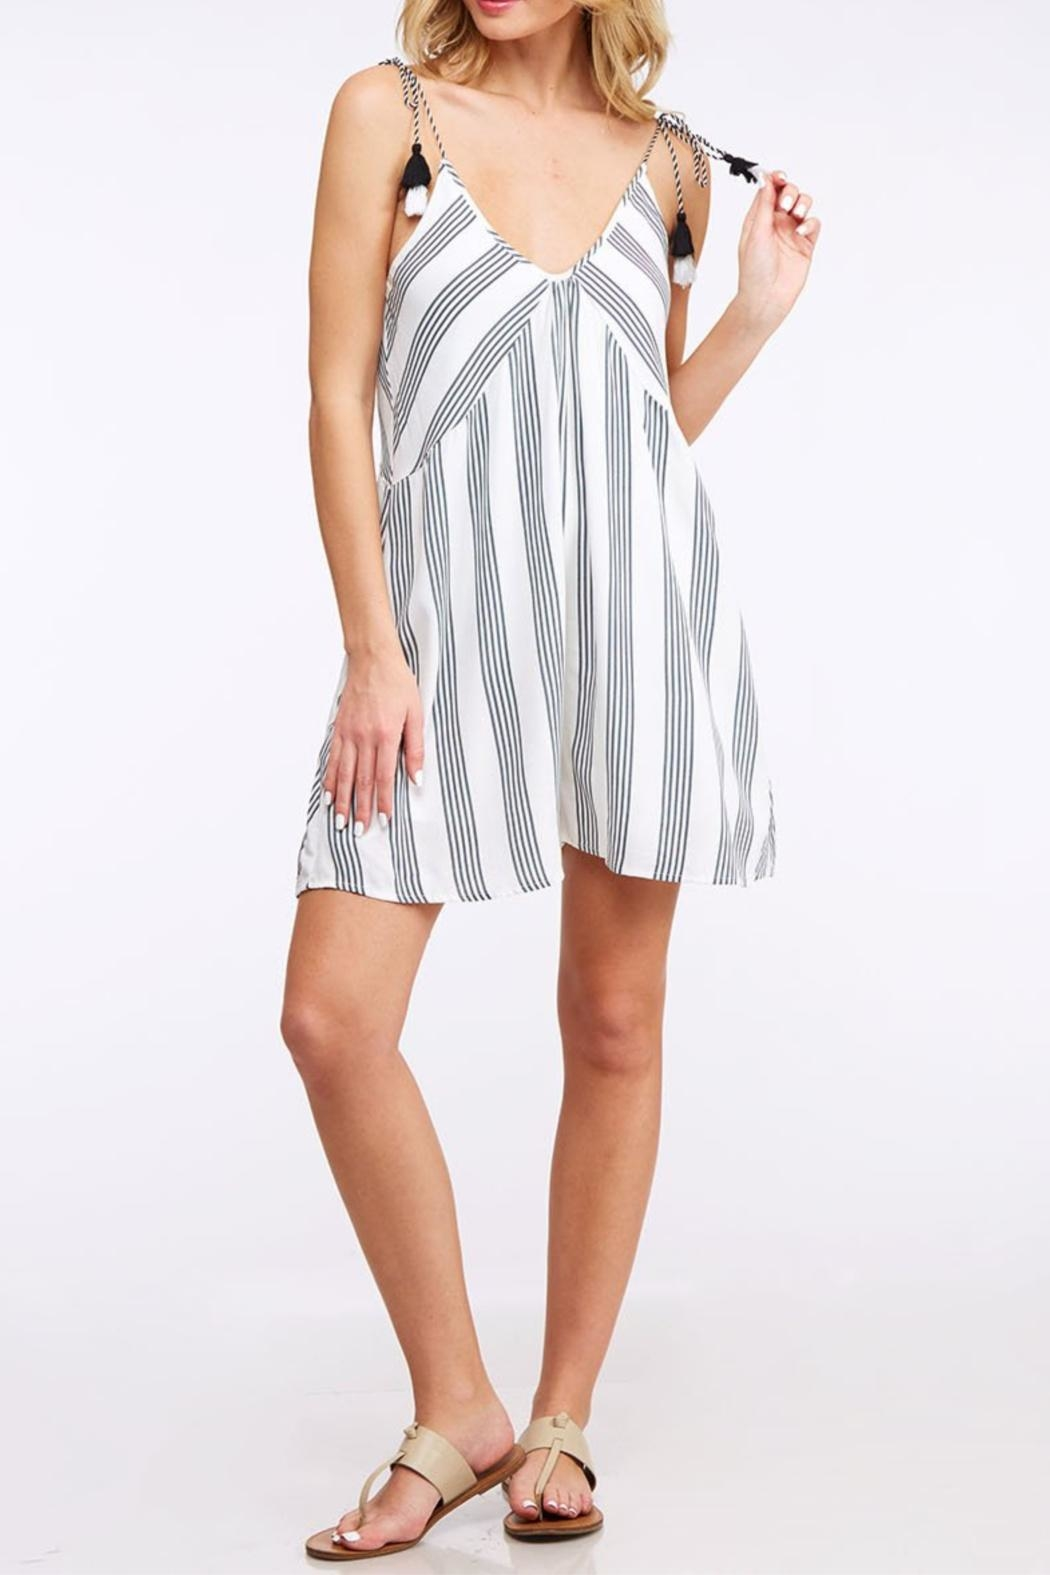 Peach Love California Striped Tassel Romper - Front Cropped Image